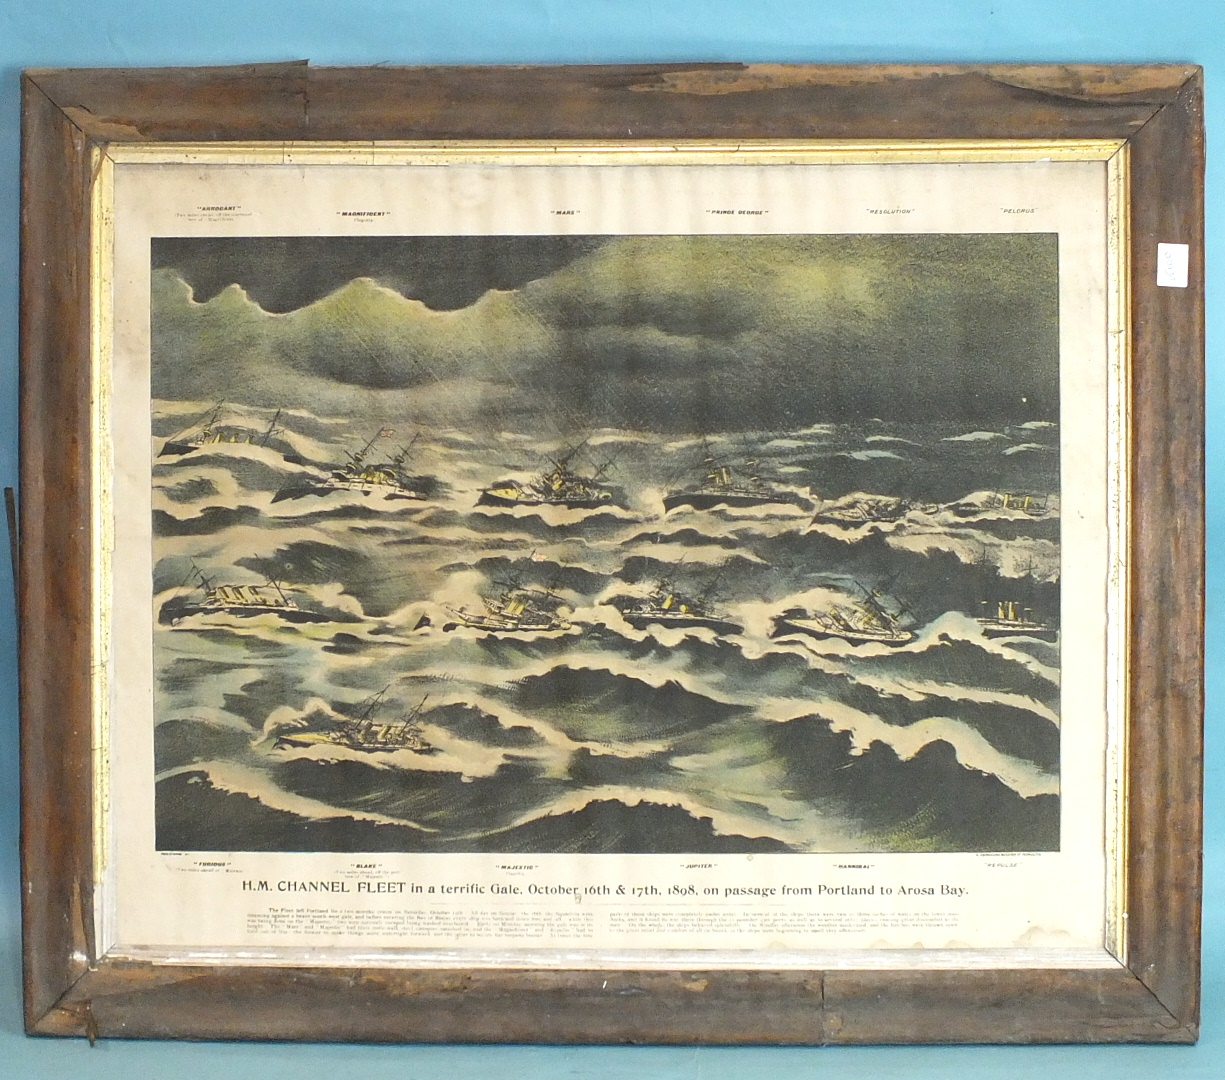 Lot 246 - A 19th century wool-work picture depicting HMS Revenge, a three-masted warship flying a white ensign